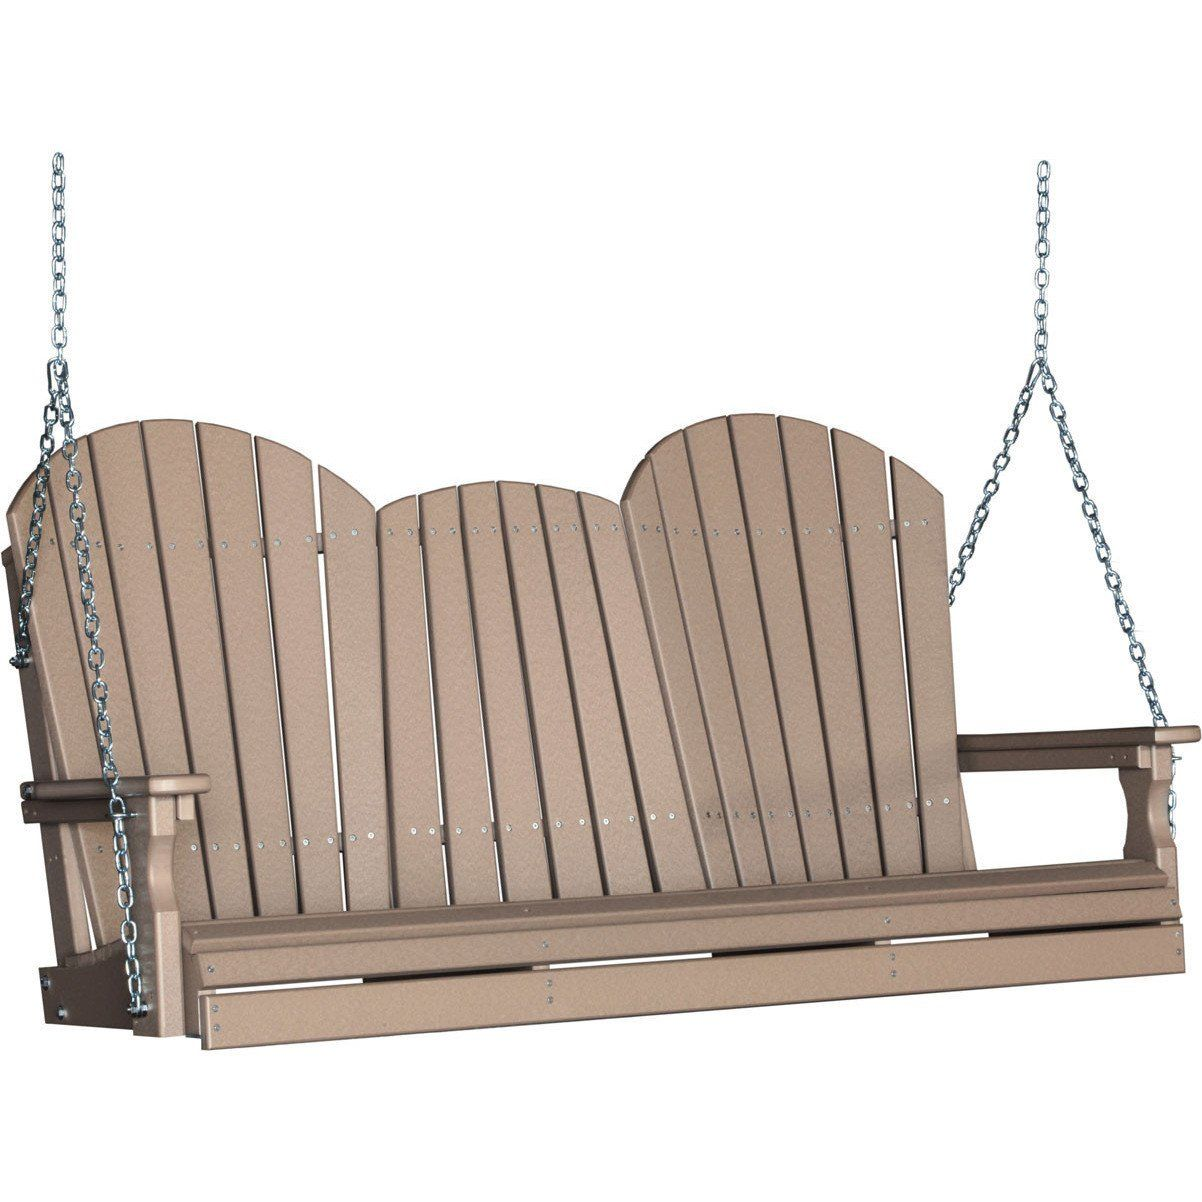 Luxcraft Adirondack 5ft Recycled Plastic Porch Swing With